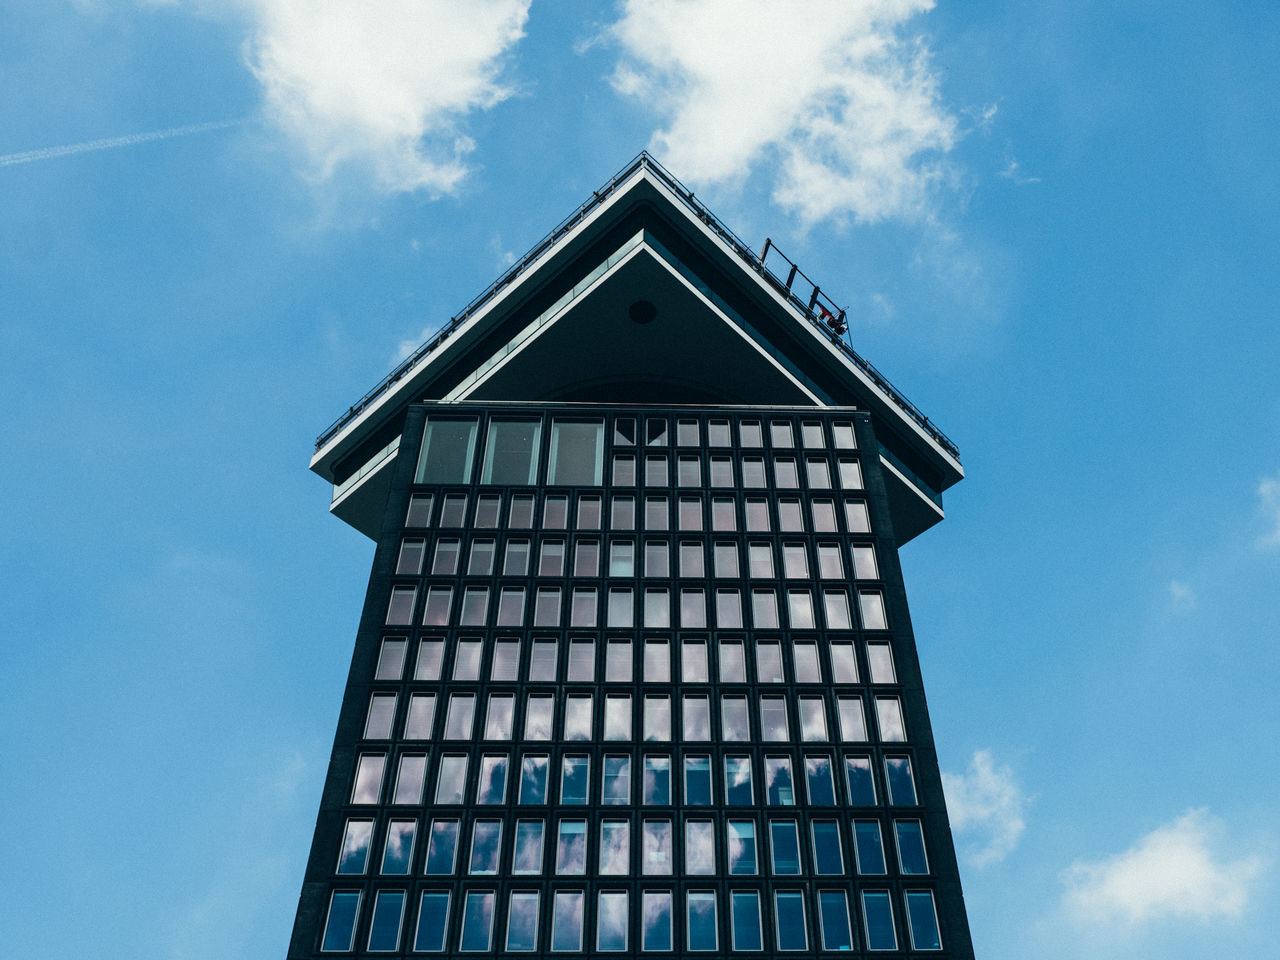 Adam Toren Amsterdam Architecture Blue Building Exterior Built Structure Cloud - Sky Day Low Angle View Modern Netherlands No People Outdoors Sky Skyscraper Tall - High The Architect - 2017 EyeEm Awards Tower